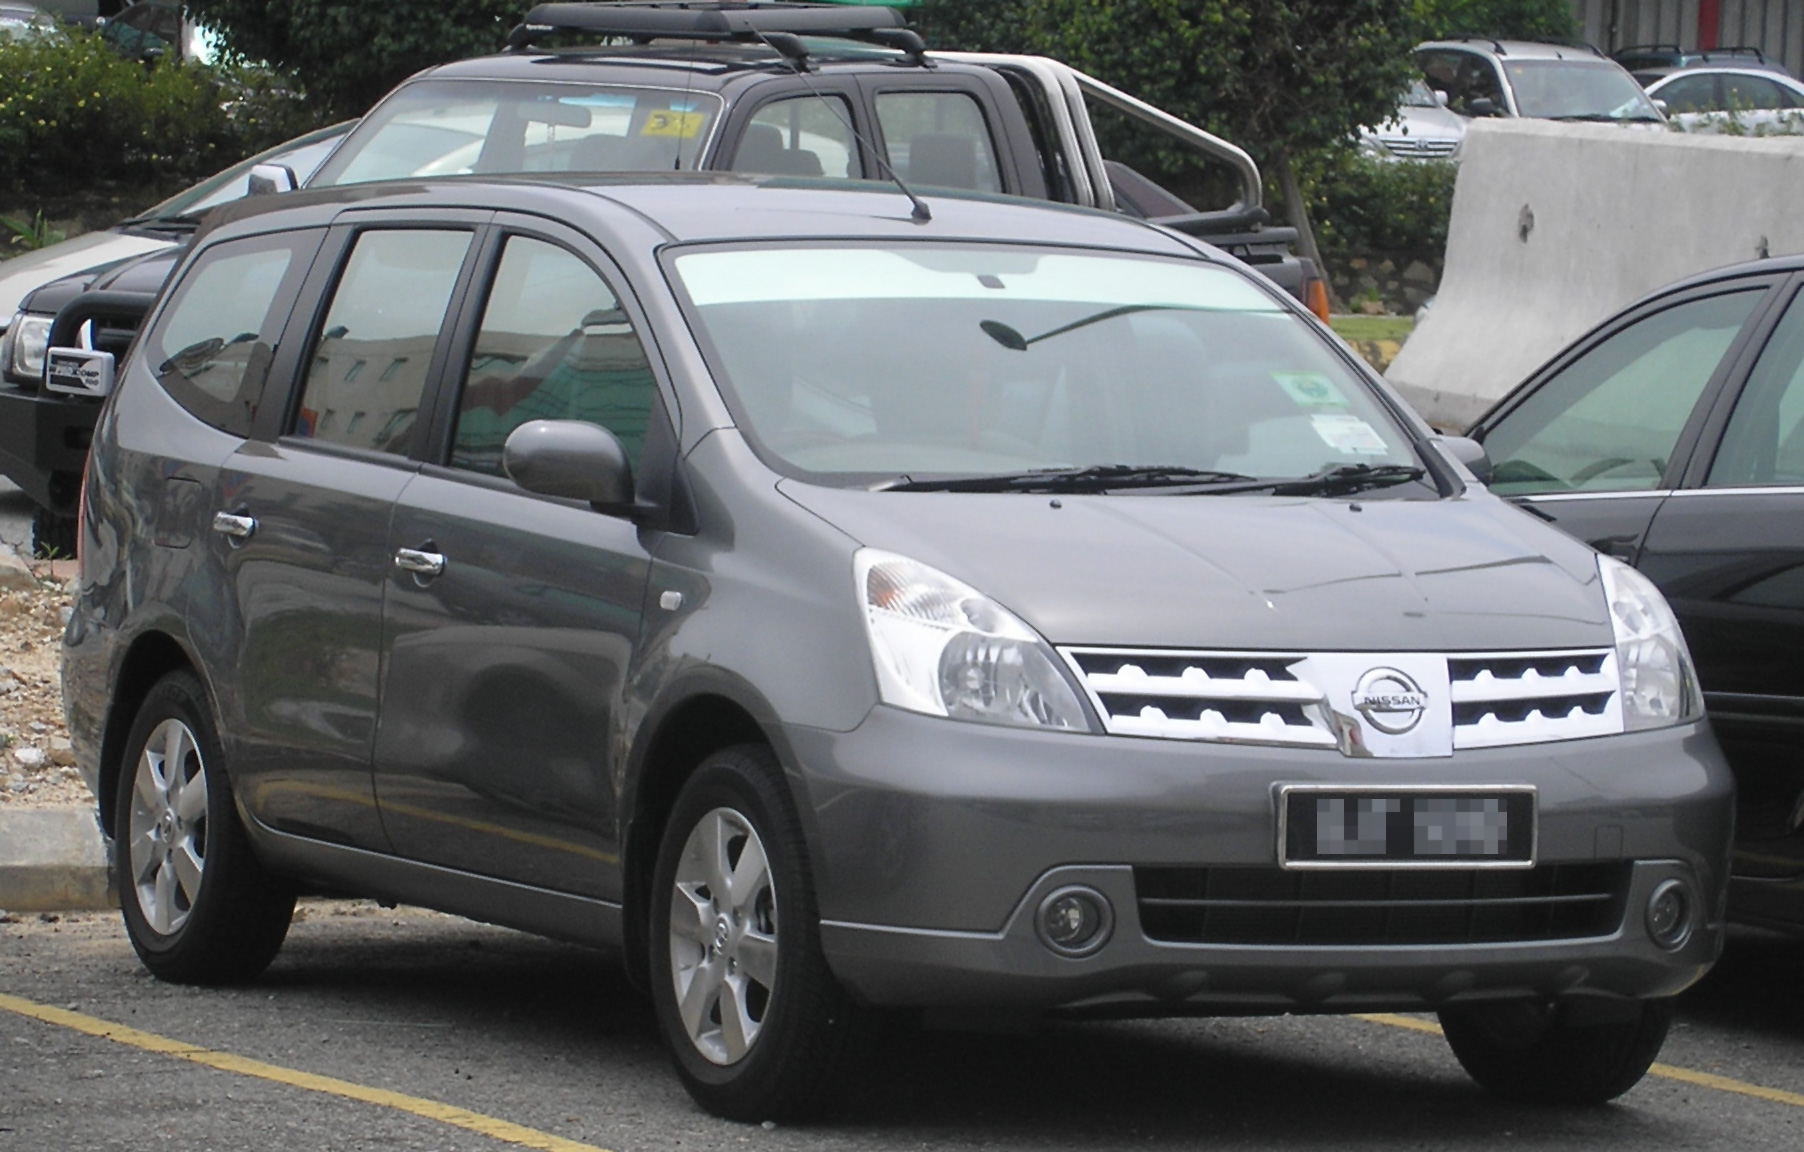 File:Nissan Grand Livina (first Generation) (front